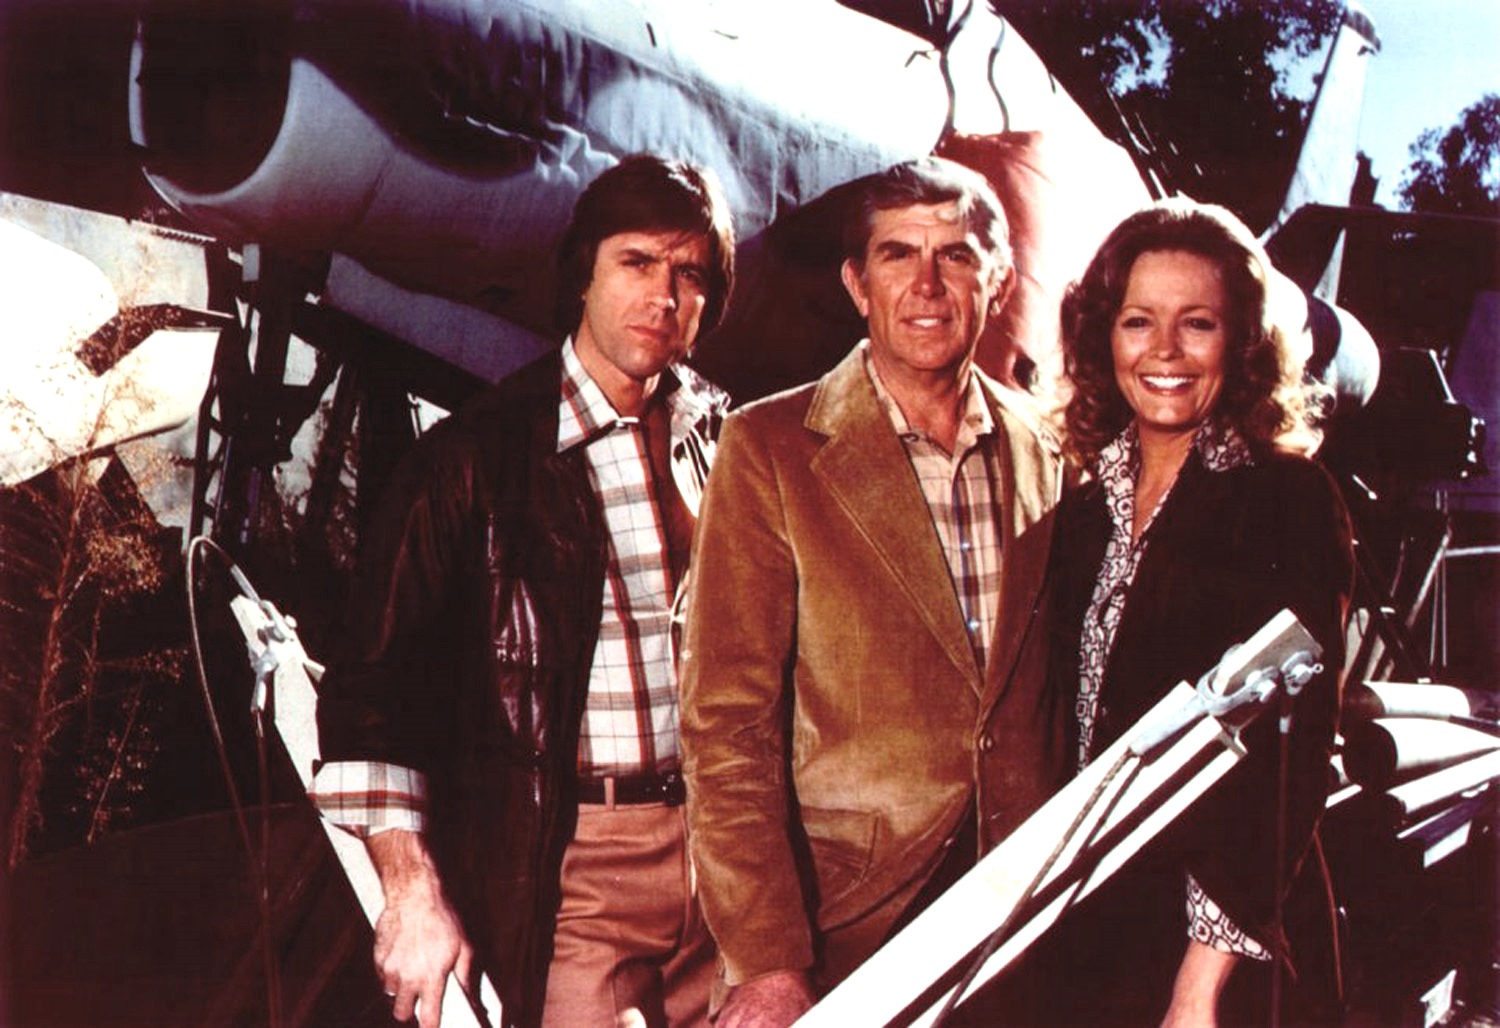 (l to r) former NASA scientist Skip Carmichael (Joel Higgins), junk dealer Harry Broderick (Andy Griffith) and chemist Melanie Slozar (Trish Stewart) in Salvage (1979)